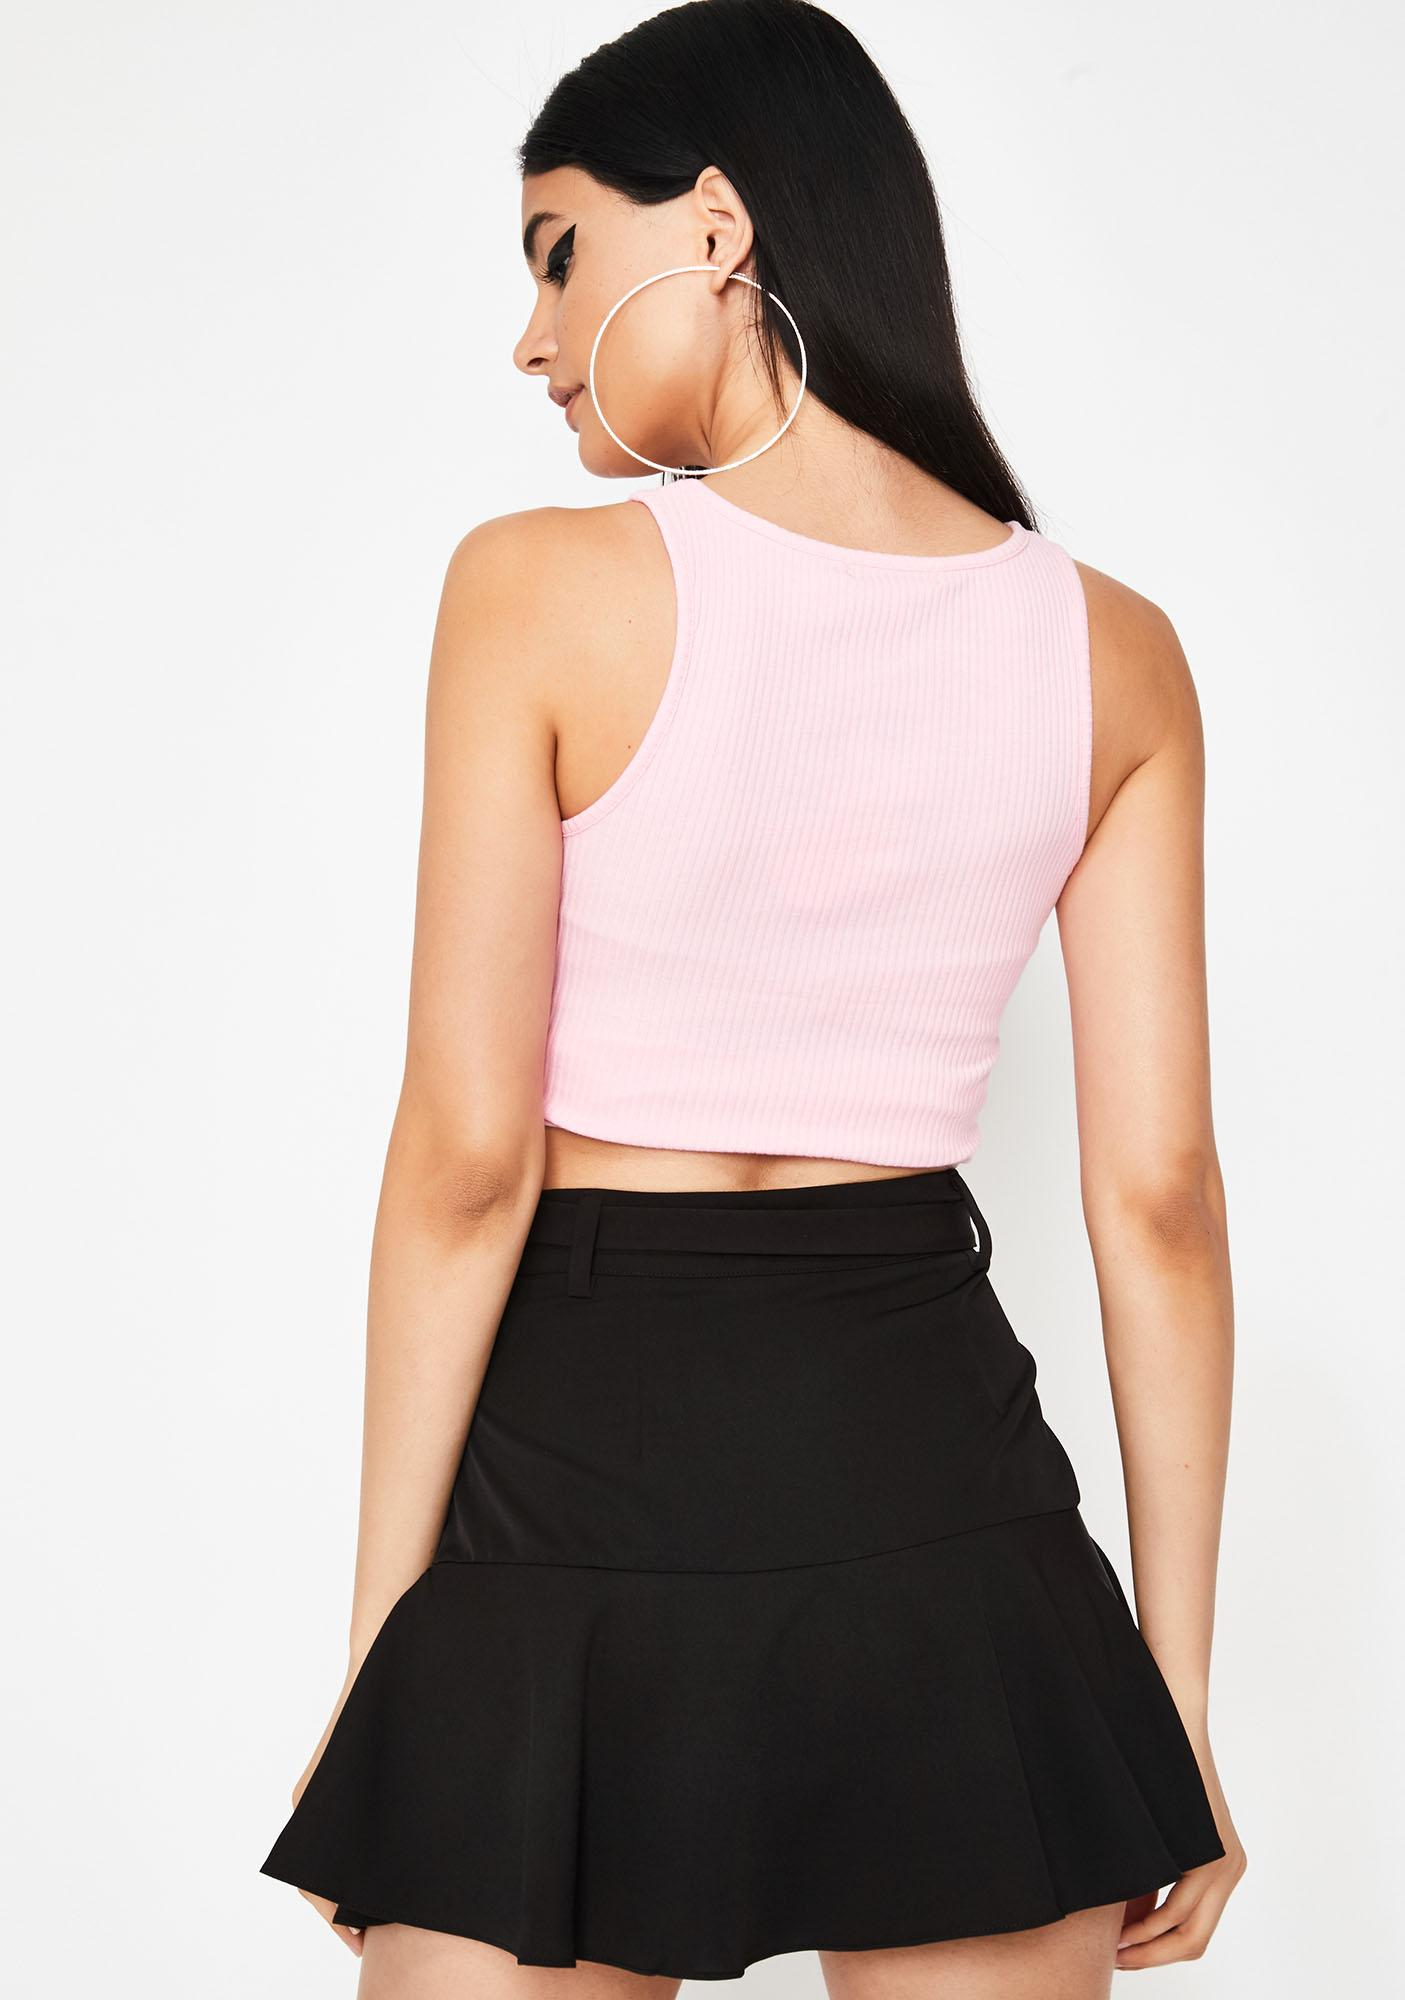 Wicked Cute Confessions Mini Skirt